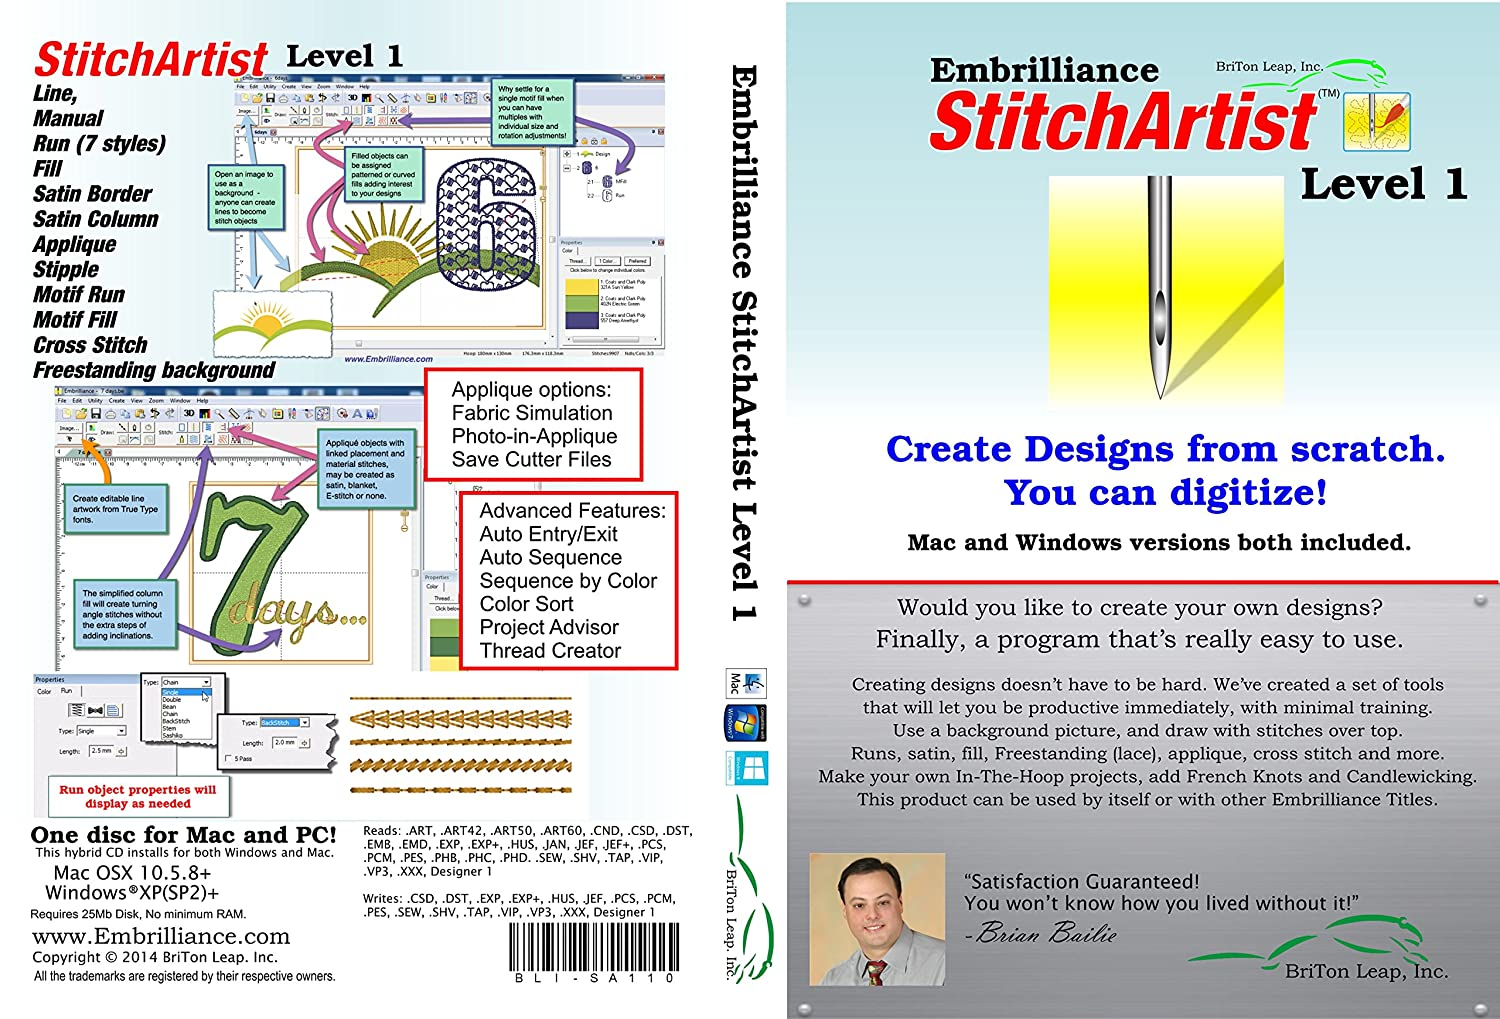 Best for beginners: Embrilliance Stitch Artist Level 1 Digitizing Software for MAC and PC